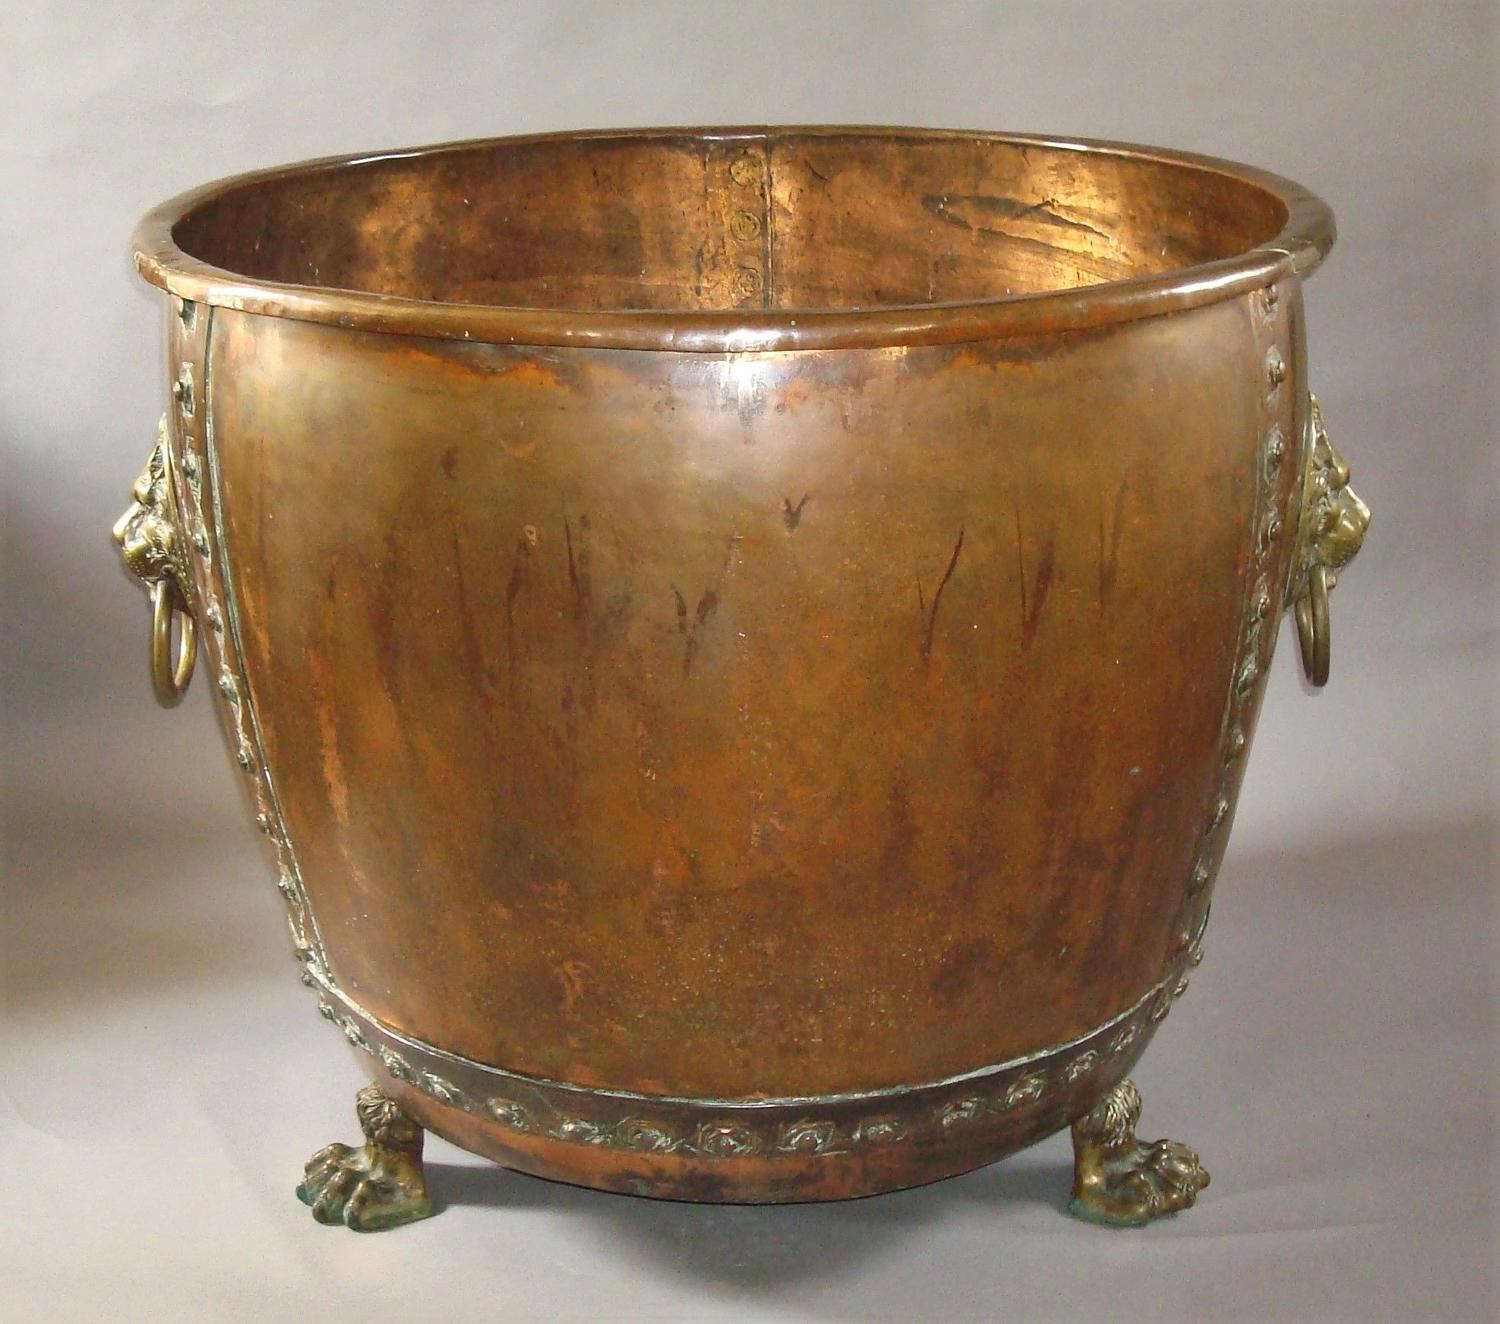 C19th English copper log basket